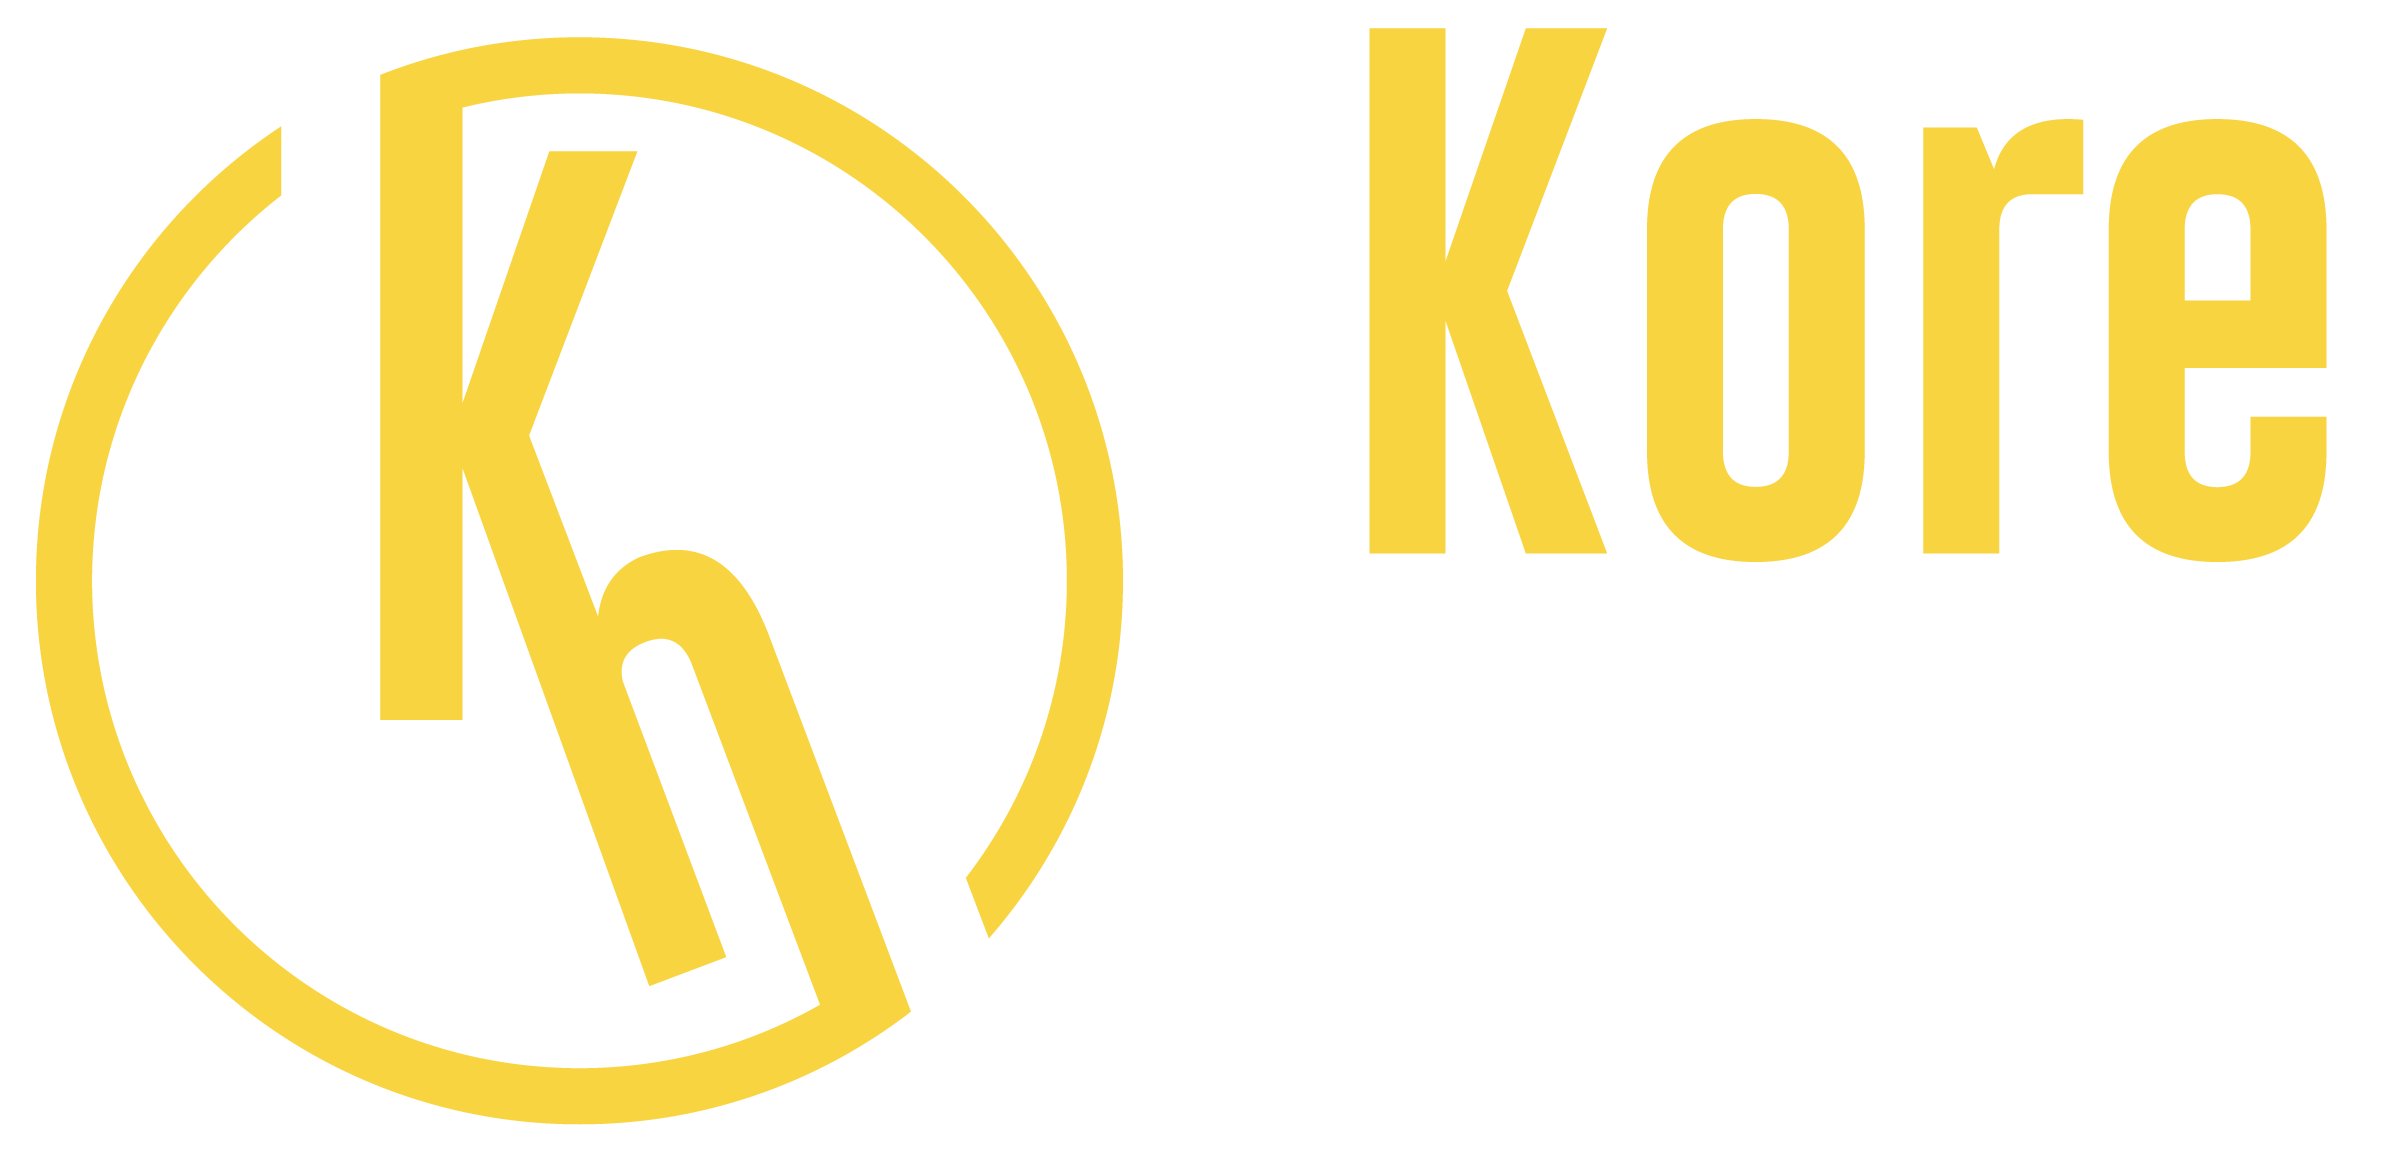 Korehost